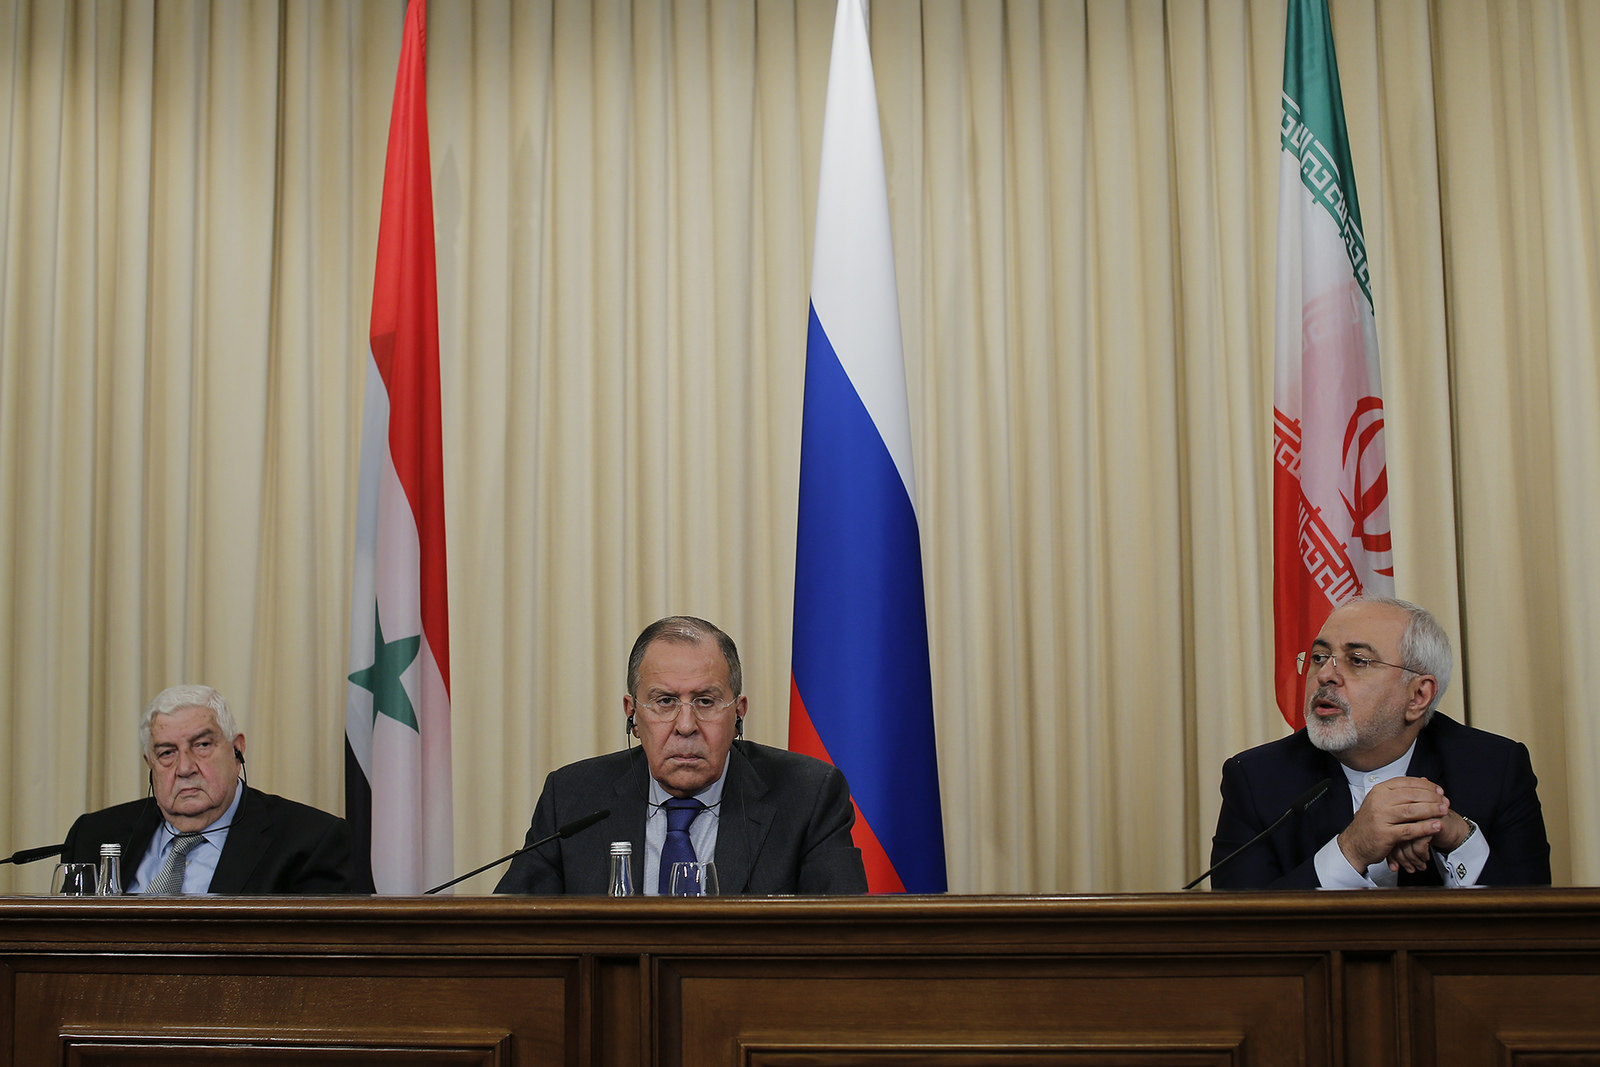 Press conference following the meeting by Sergey Lavrov with Mohammad Javad Zarif and Walid Muallem, Moscow, April 14, 2017.